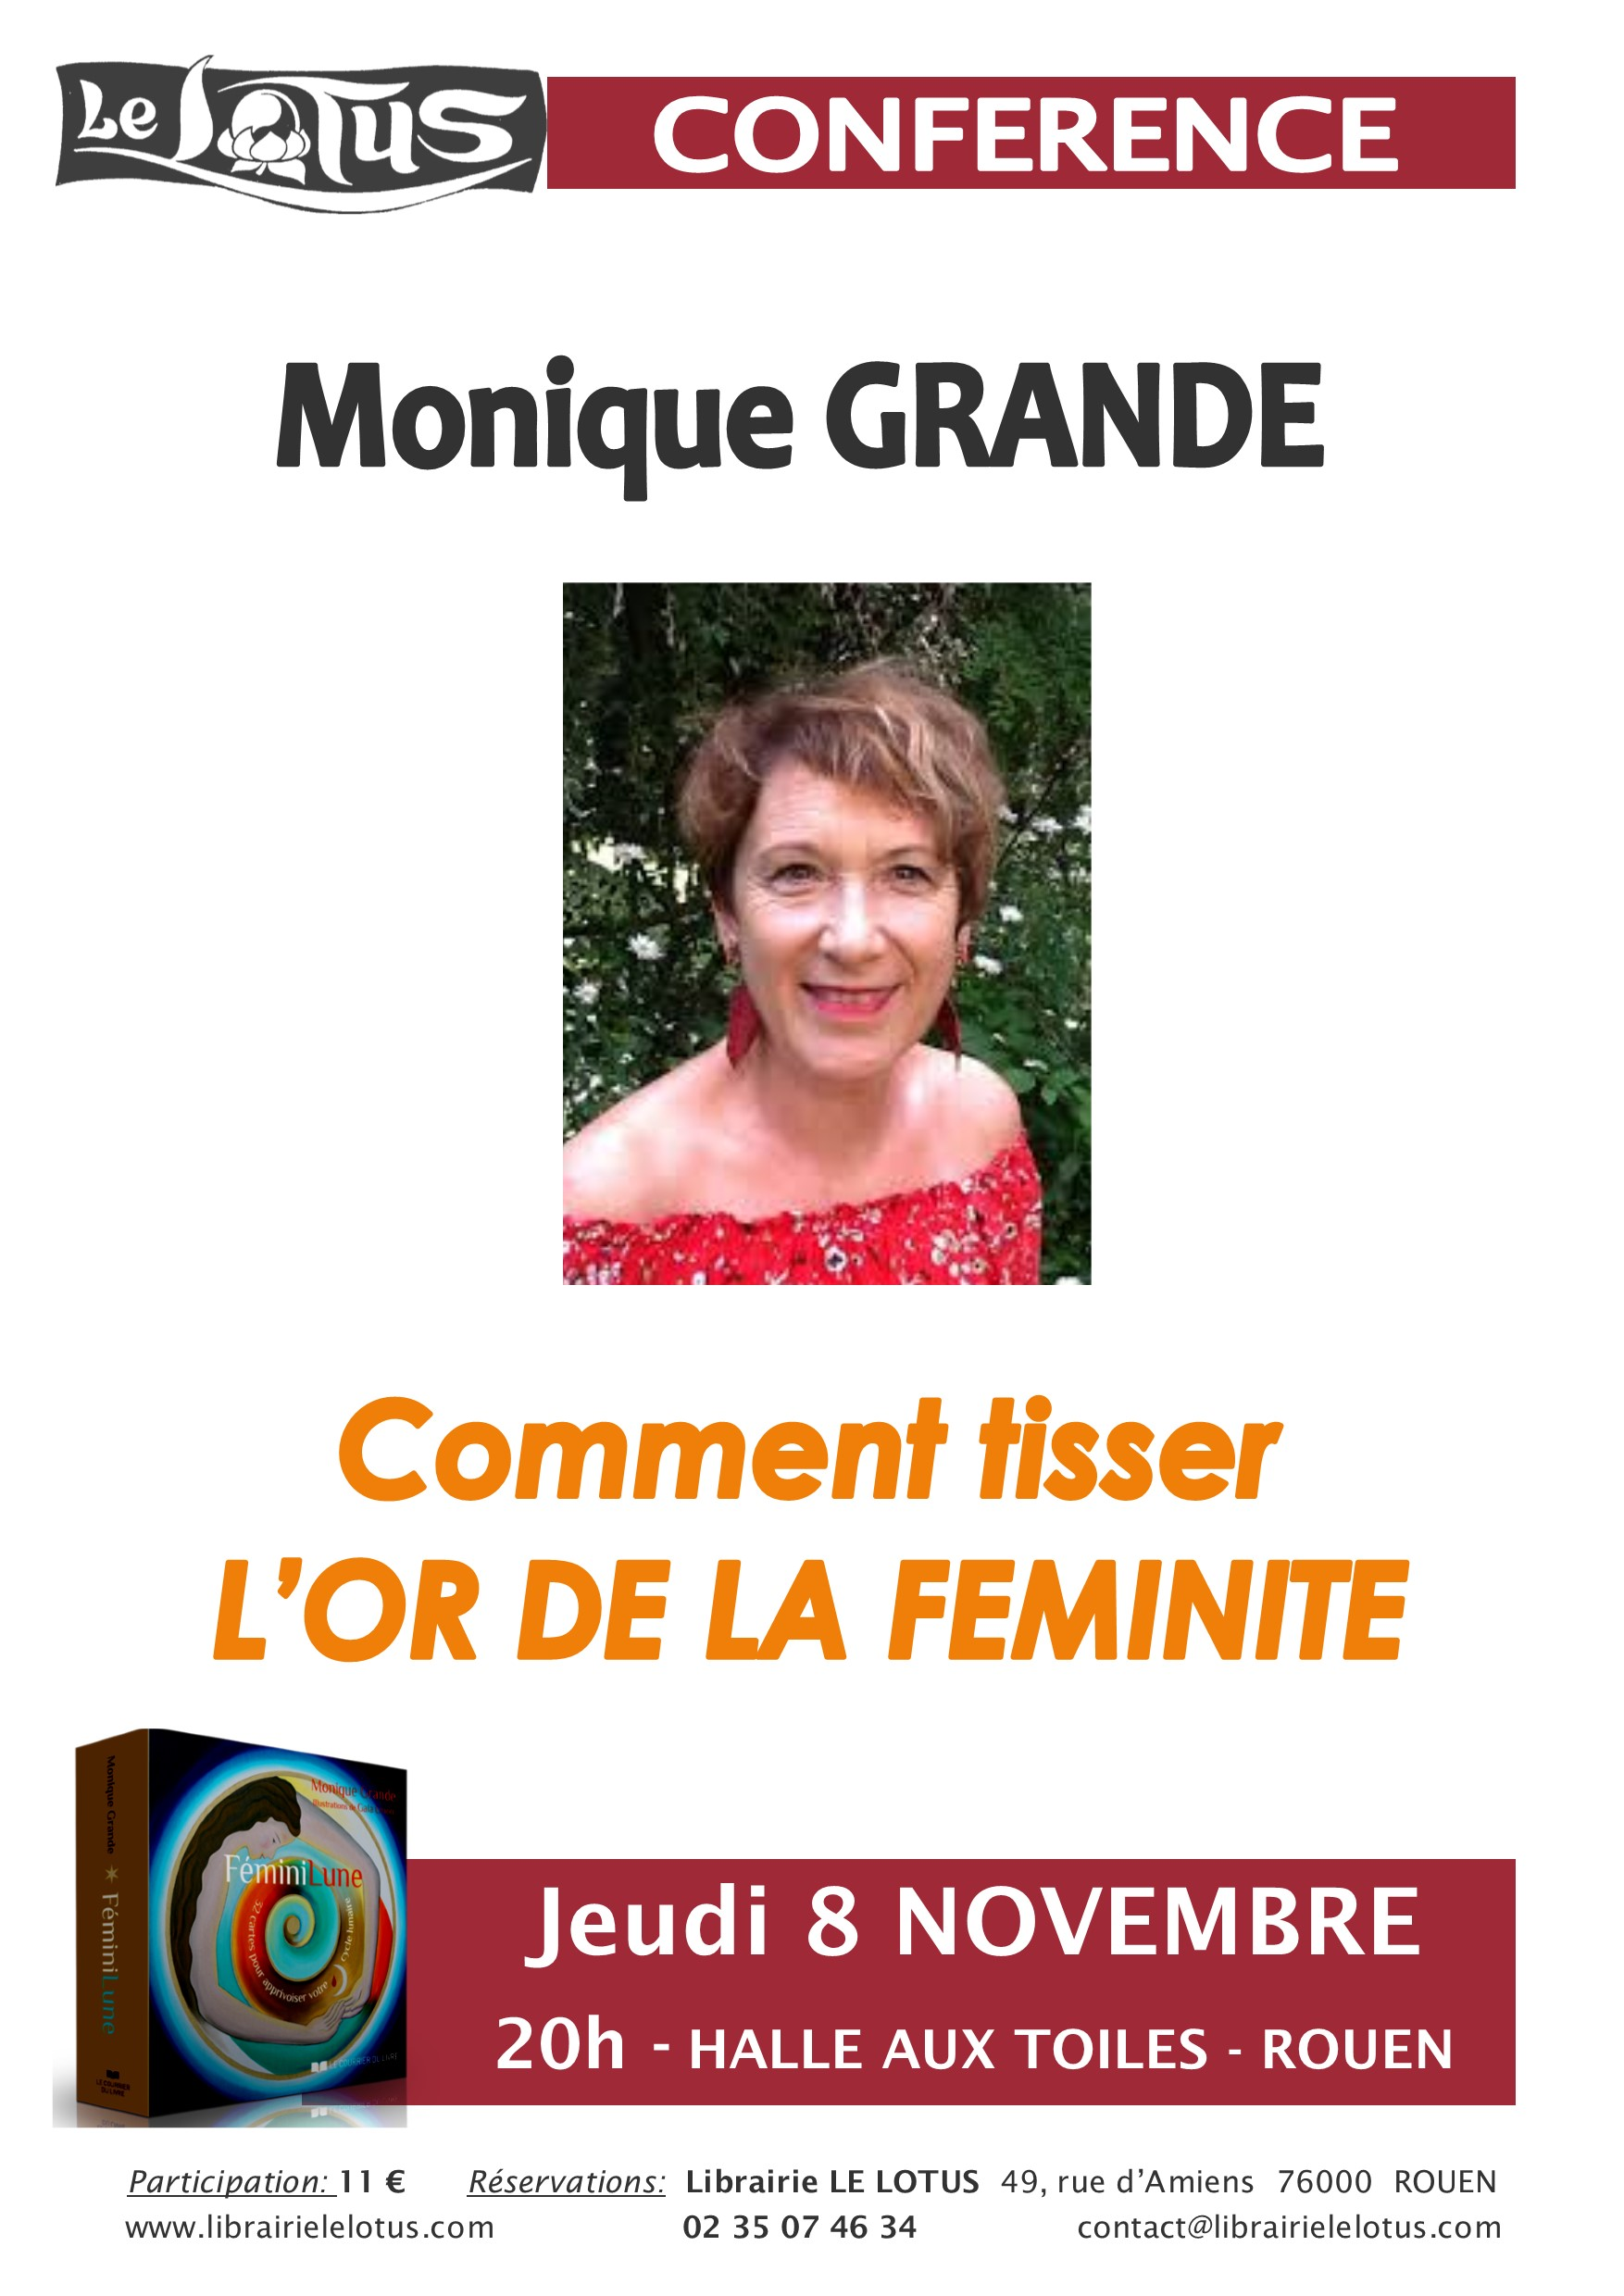 CONFERENCE - MONIQUE GRANDE - COMMENT TISSER L'OR DE LA FEMINITE